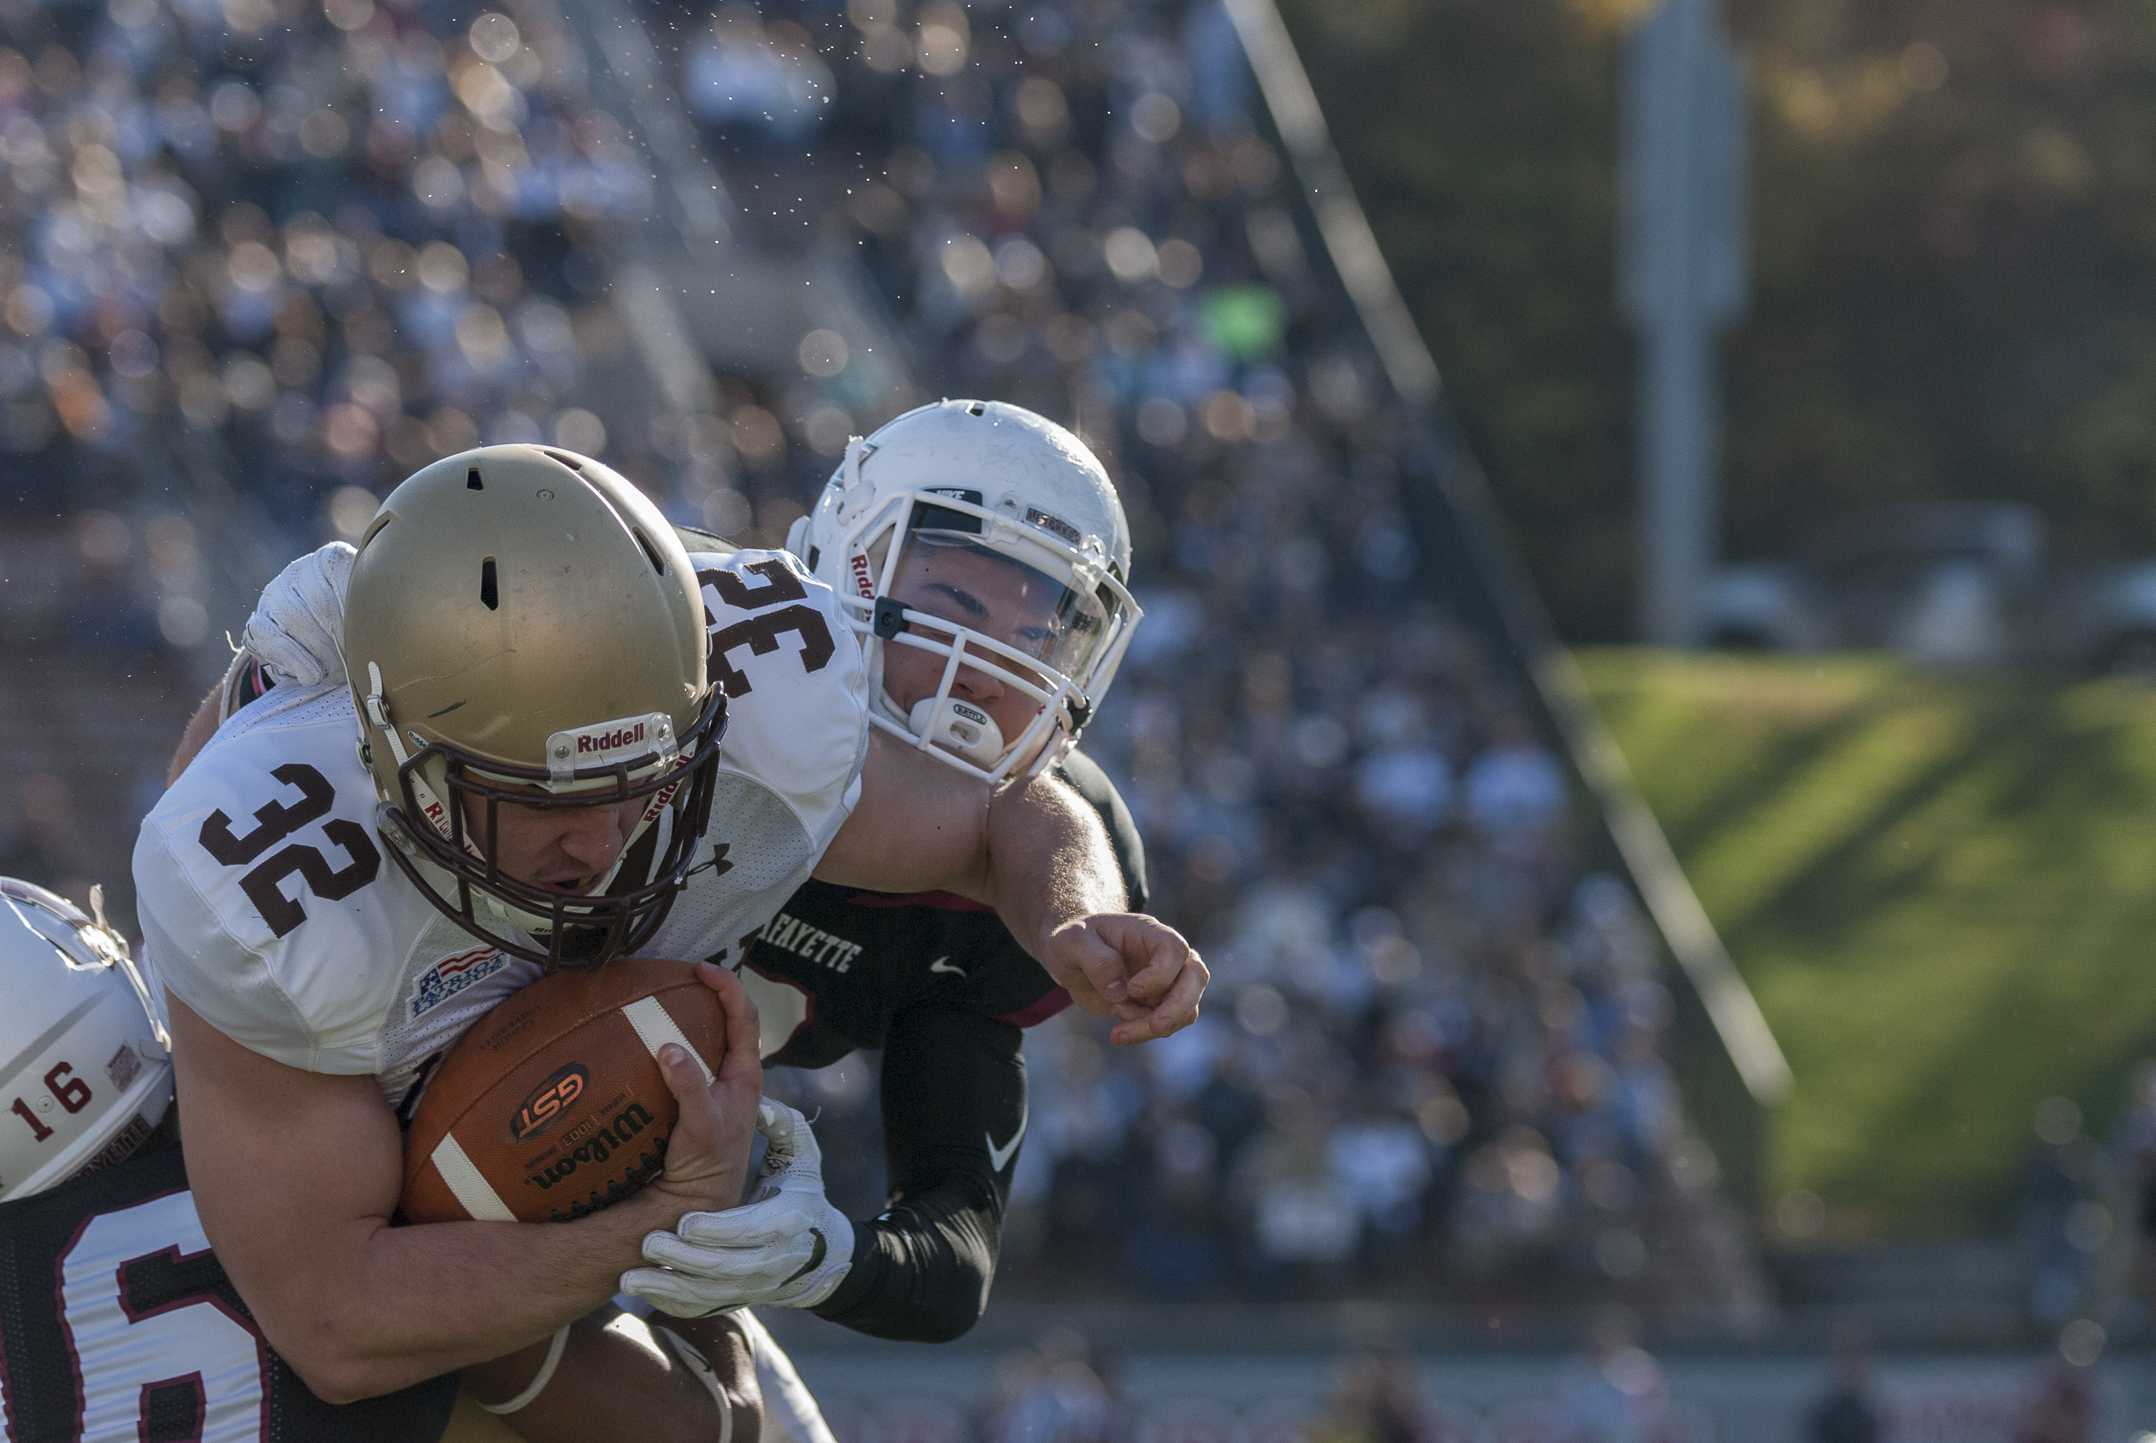 Sophomore running back Dom Bragalone powers through Lafayette defenders on Saturday, Nov. 19, 2016, in Fisher Stadium. Bragalone had 110 rushing yards and a touchdown in Lehigh's win Saturday. (Roshan Giyanani/B&W Staff)